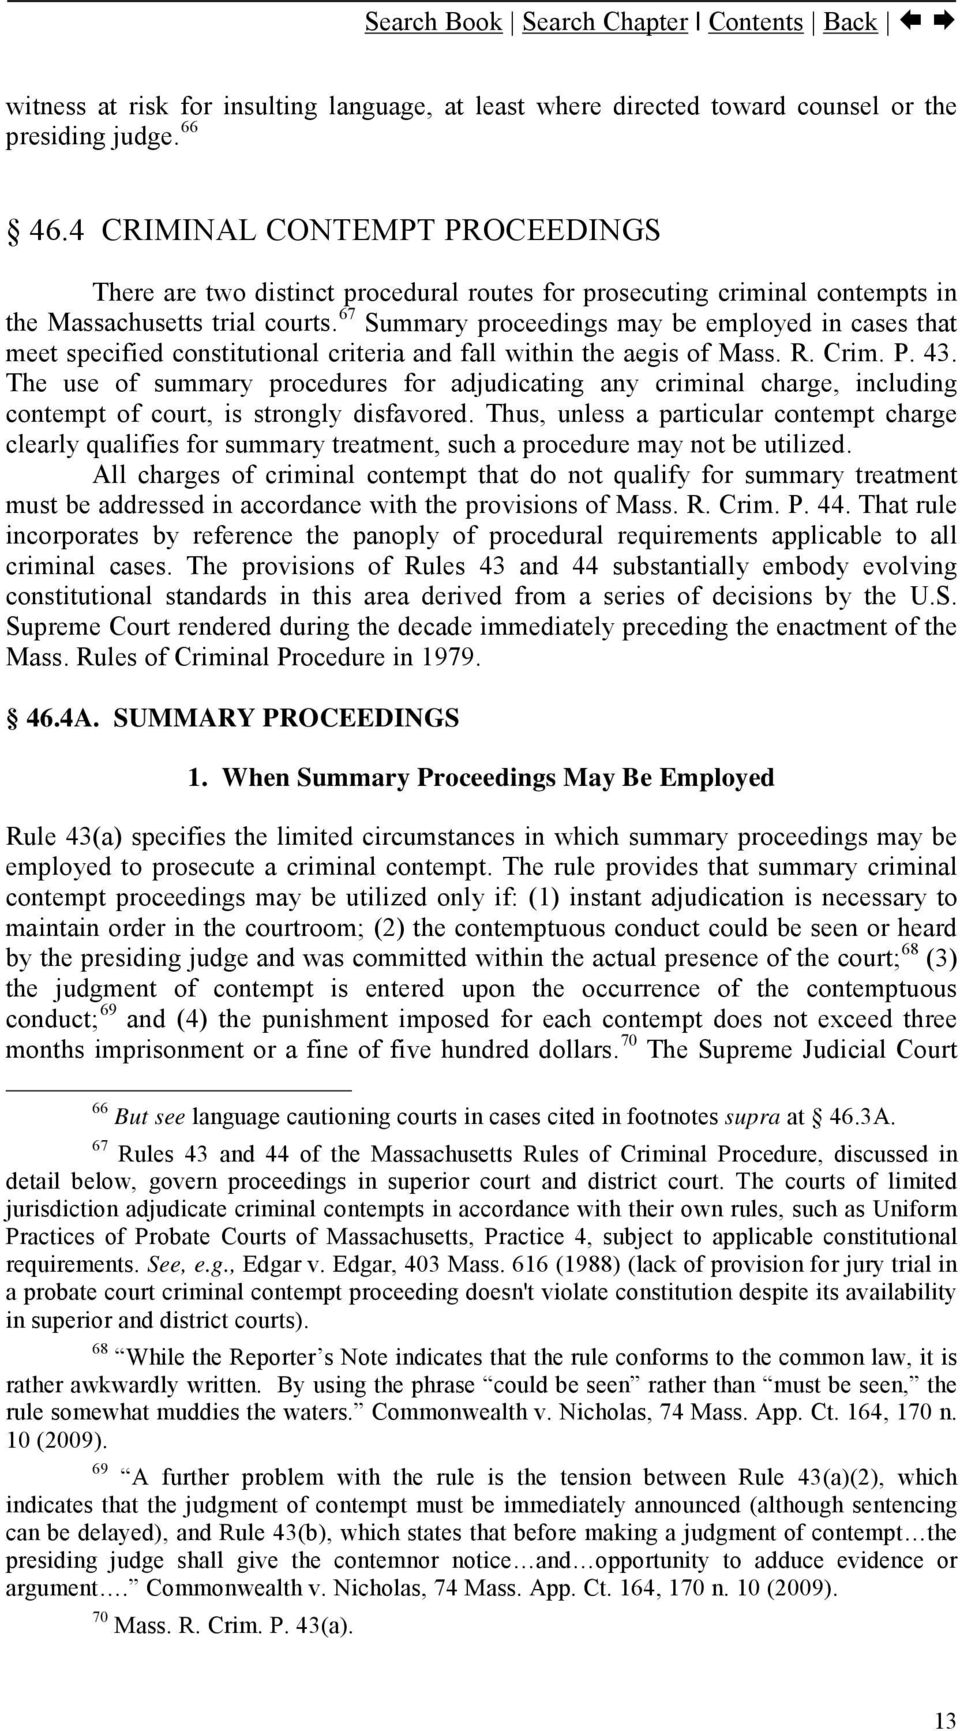 67 Summary proceedings may be employed in cases that meet specified constitutional criteria and fall within the aegis of Mass. R. Crim. P. 43.